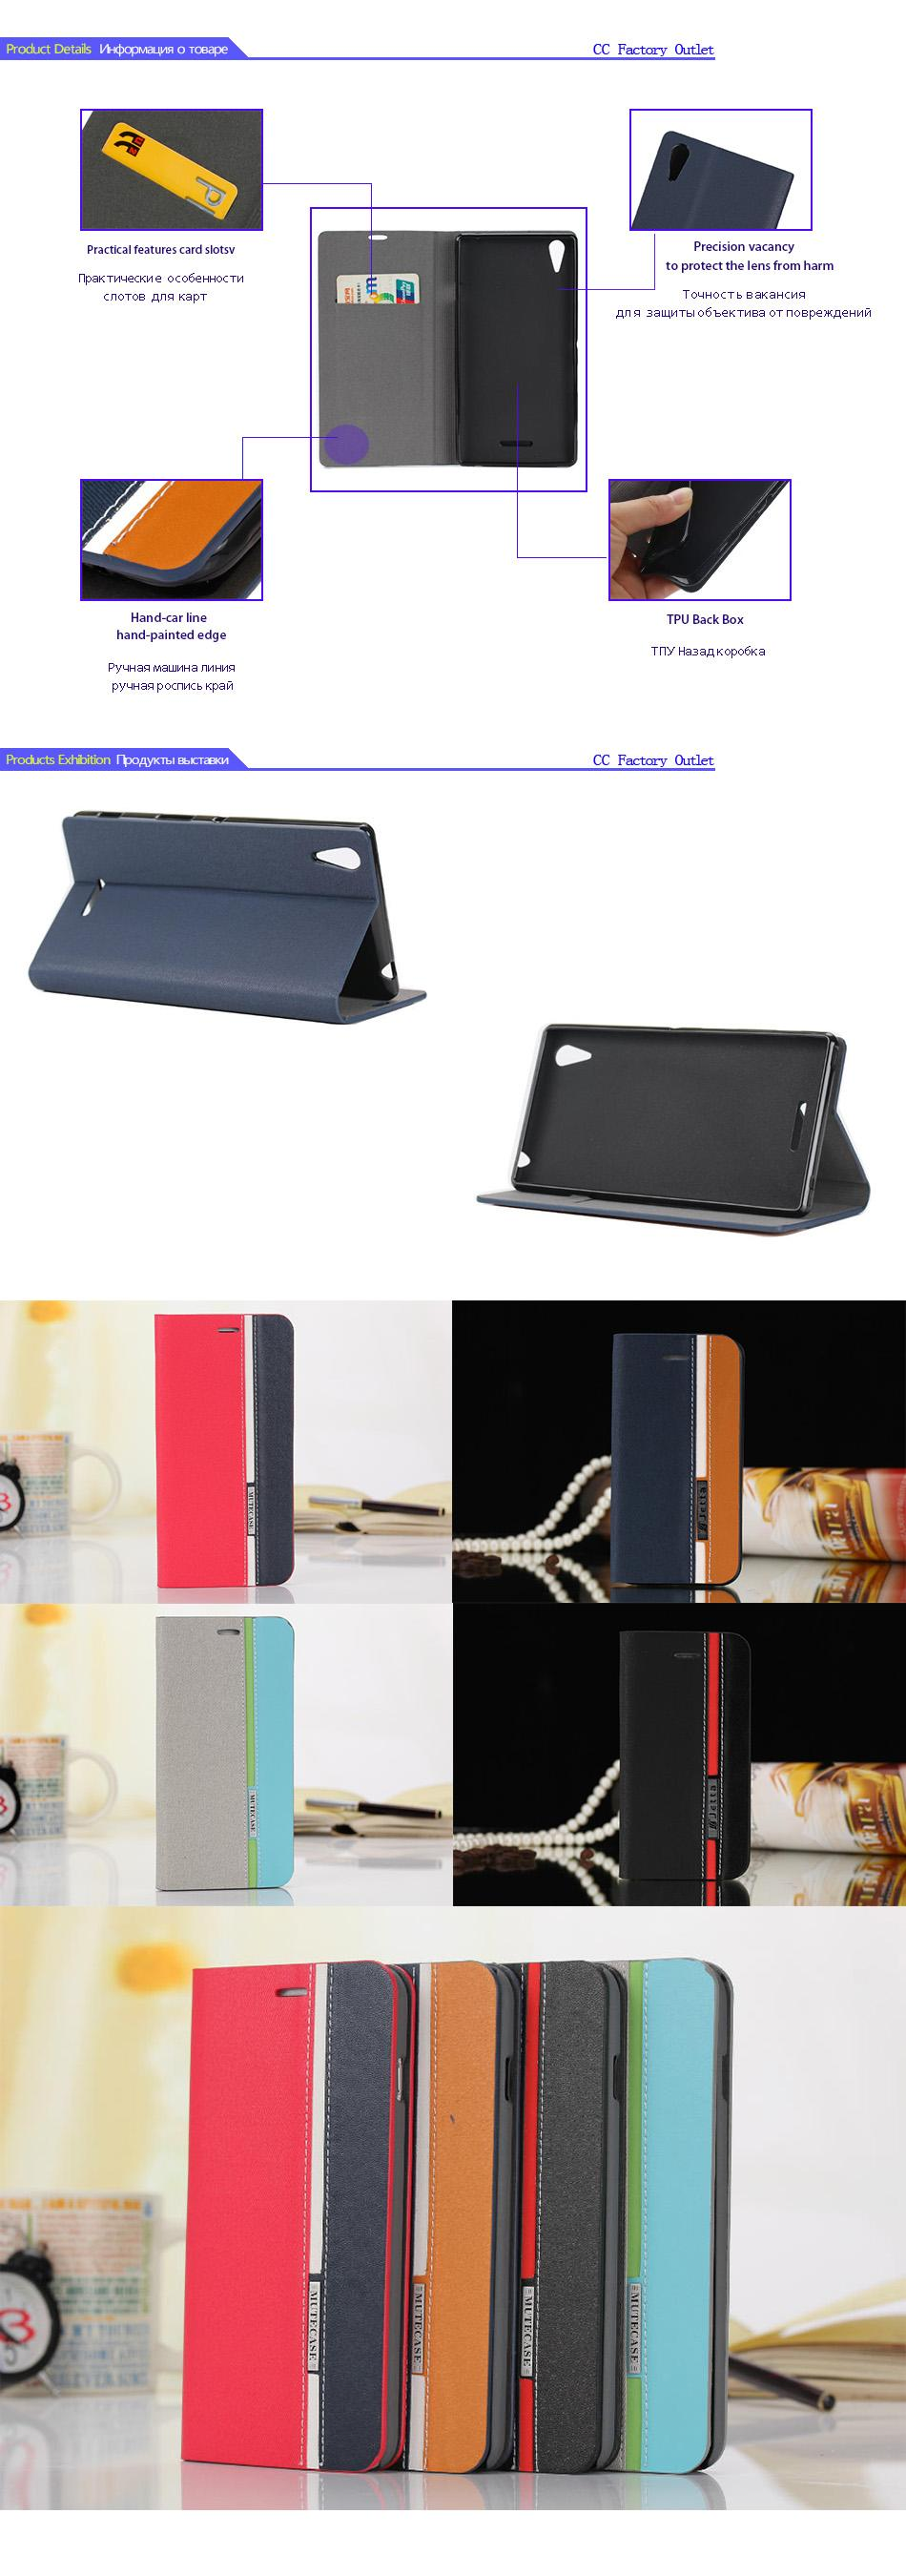 grau Qualified Pipetto Ipad Pro Case Origami Case Tablet & Ebook Reader Accs